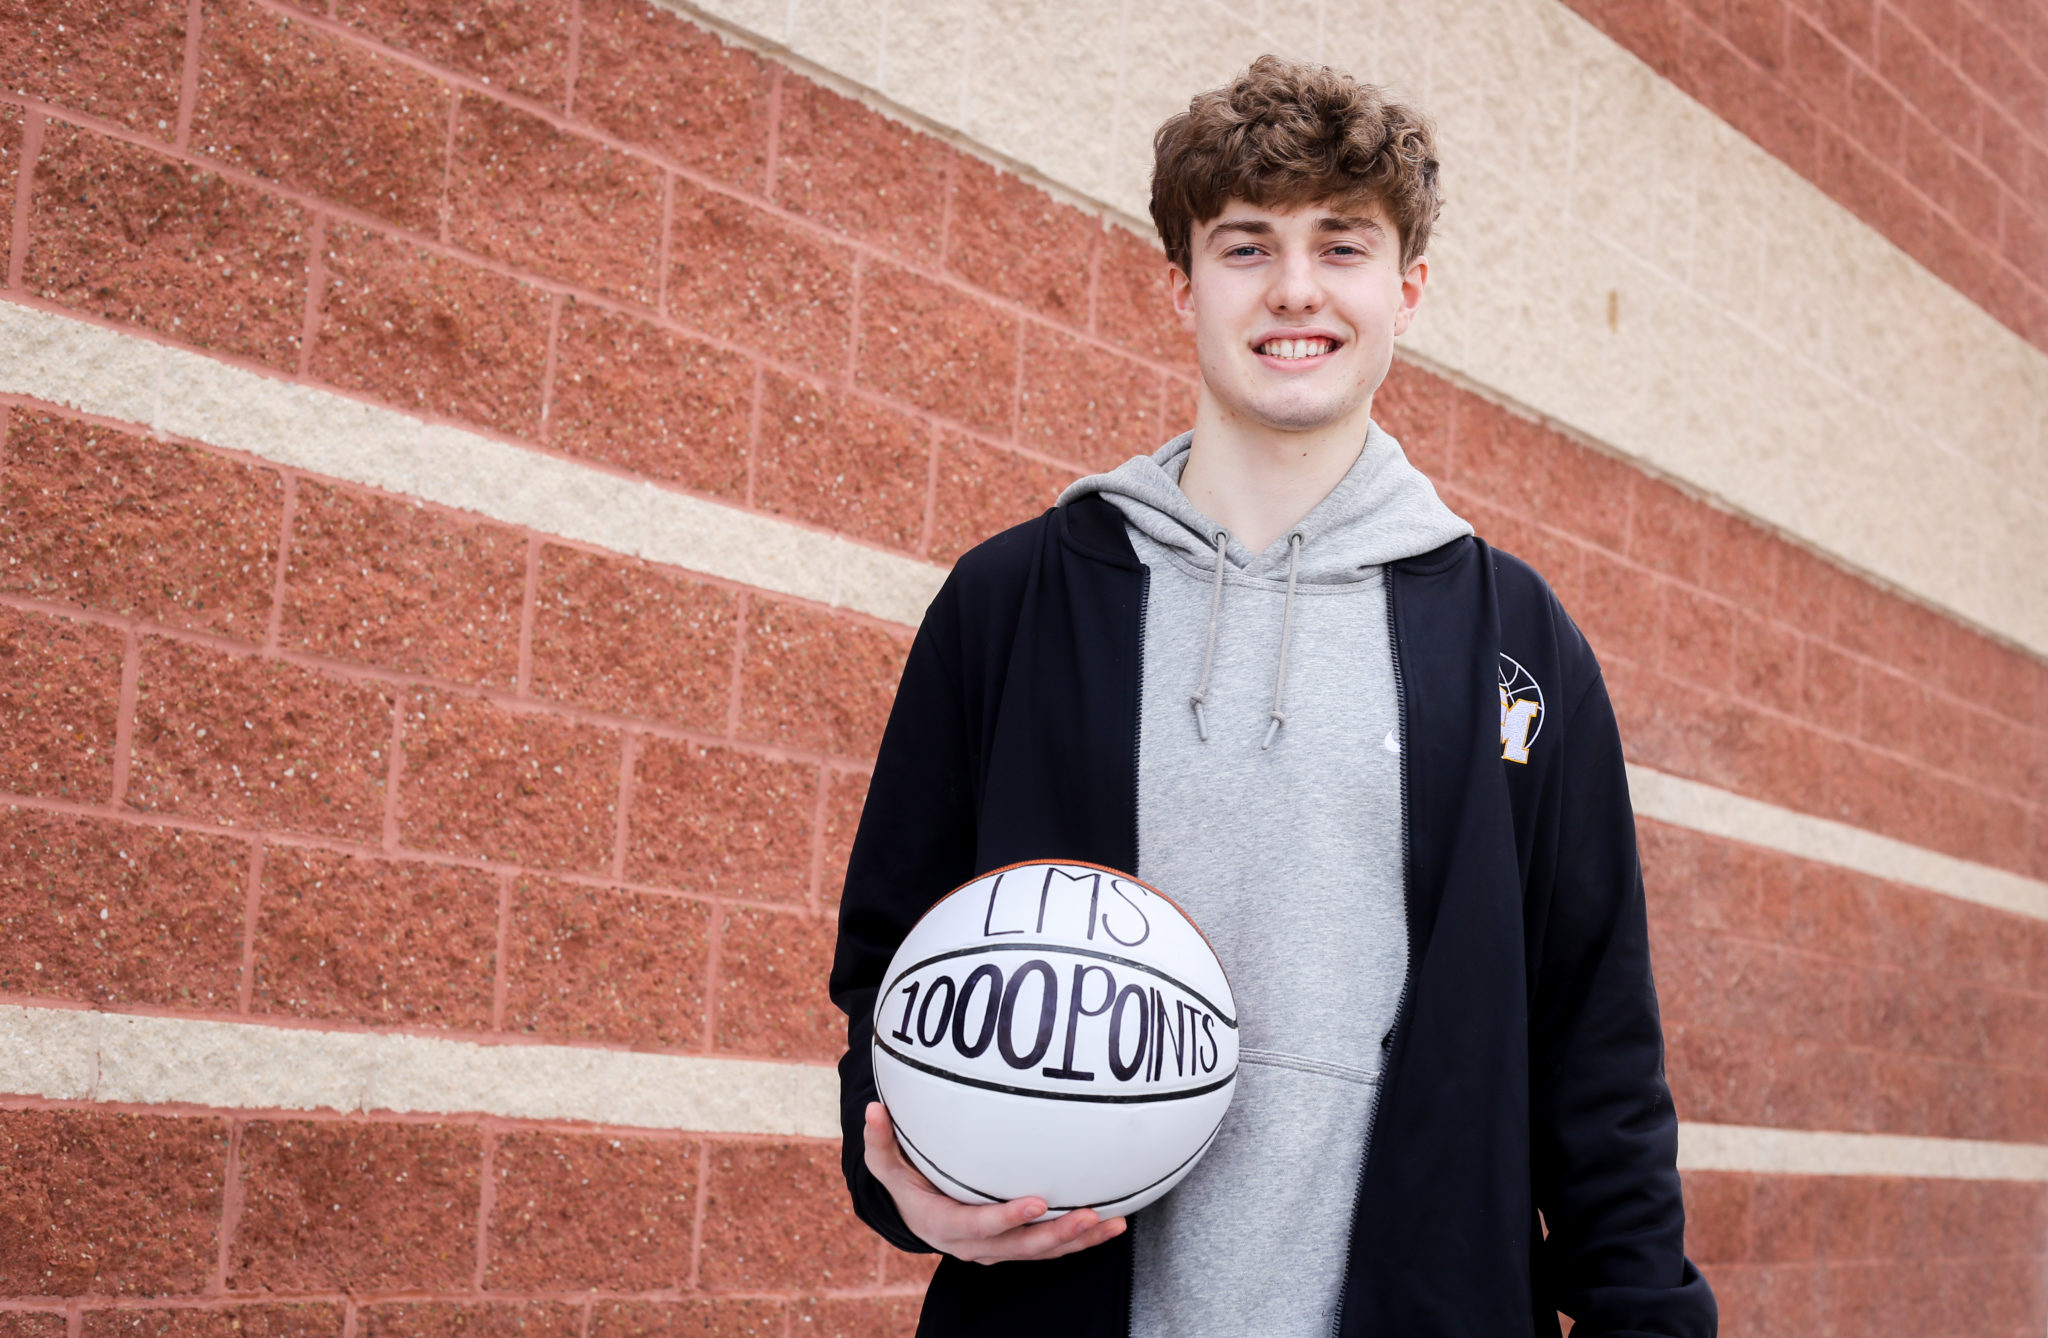 cole fisher reaching 1000 career points